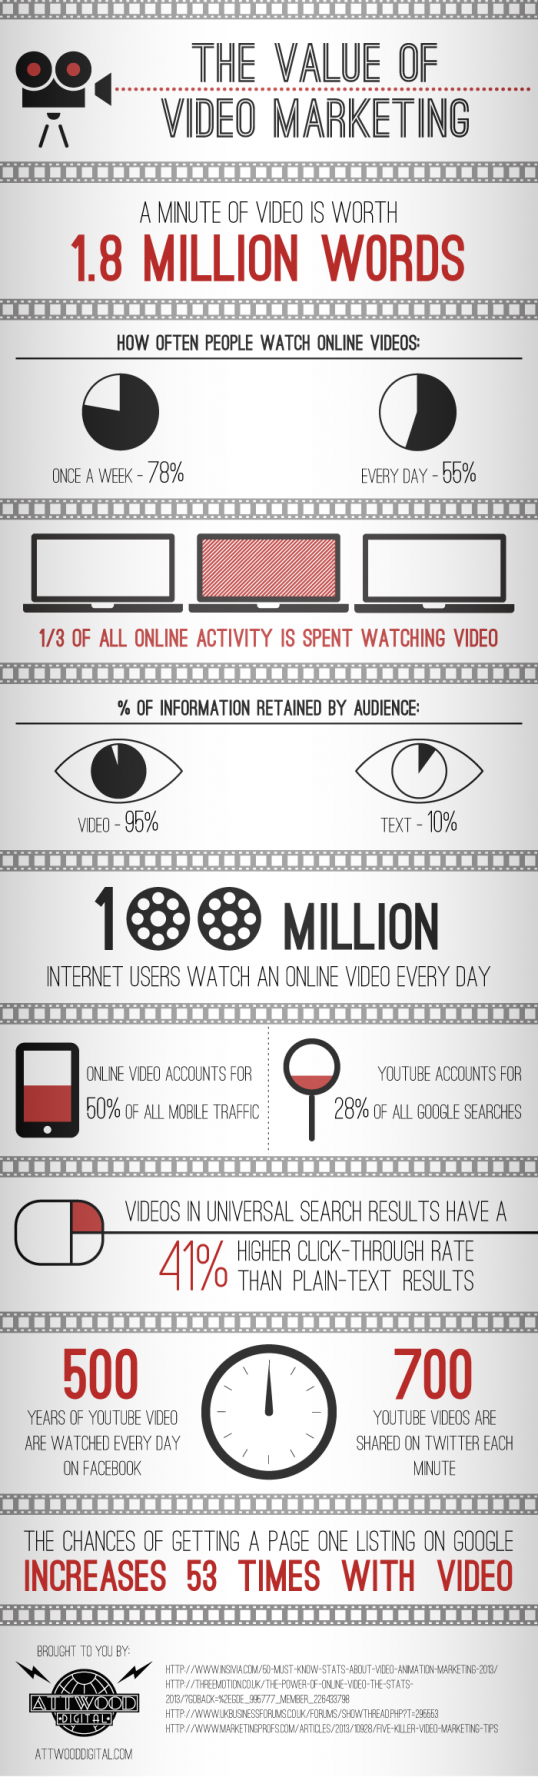 The Value Of Video Marketing